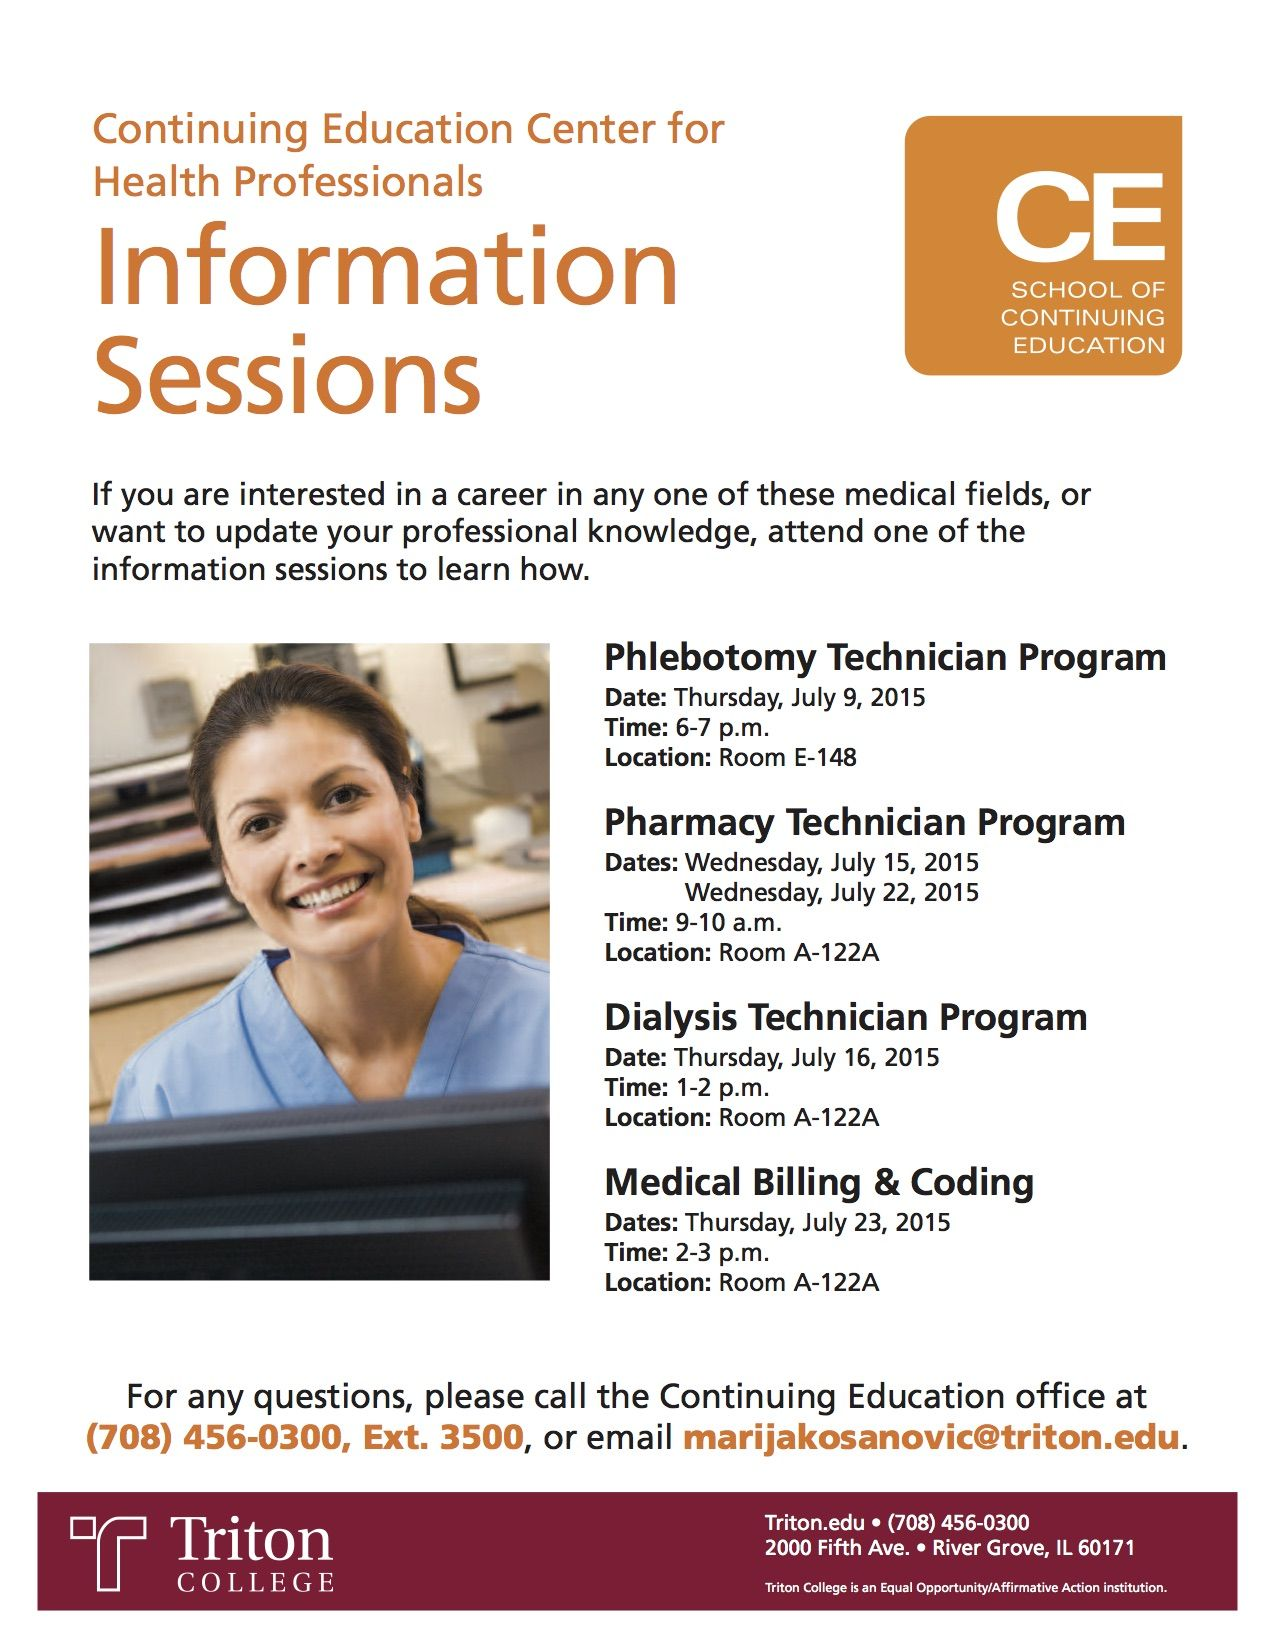 If you are interested in a career in any one of these medical fields, or want to update your professional knowledge, attend one of the information sessions to learn how.  For any questions, please call Marija Kosanovic, Manager, Center for Health Professionals  (708) 456-0300, Ext. 3773 marijakosanovic@triton.edu